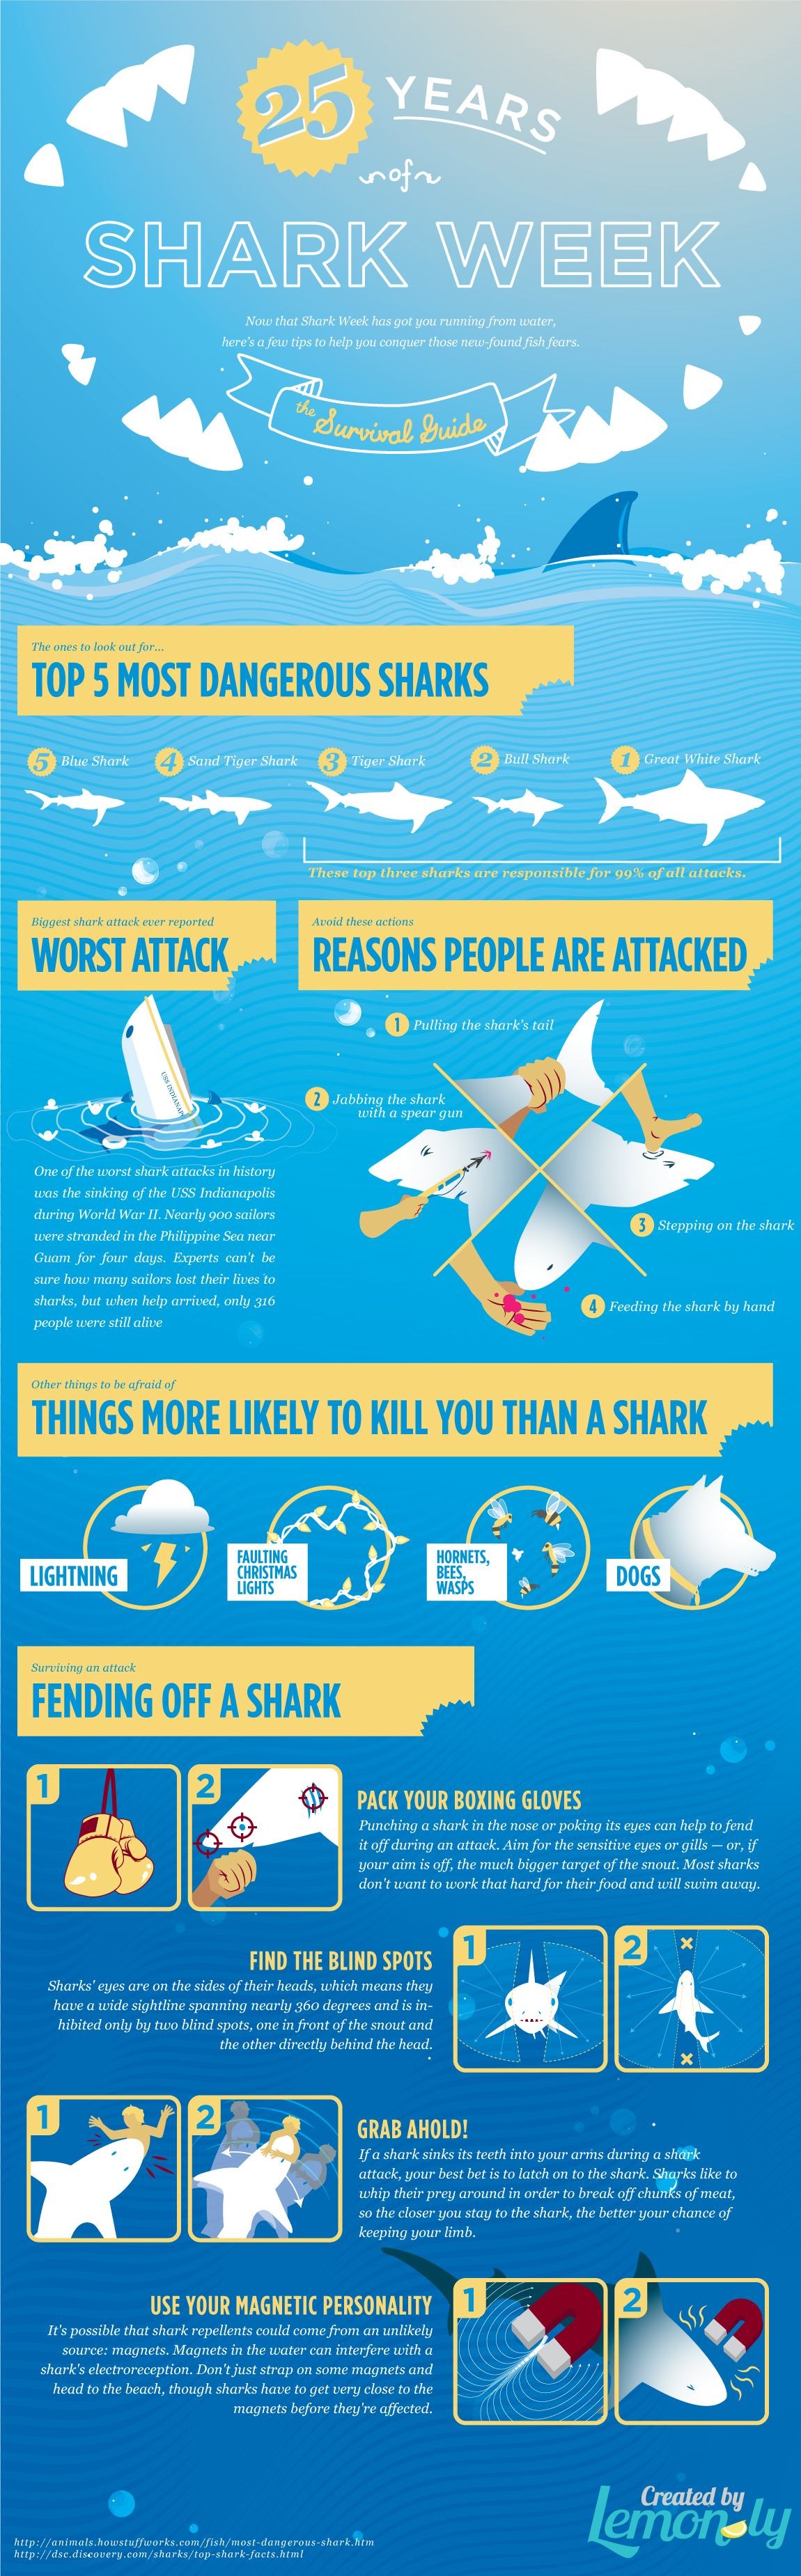 Shark Week Part 2: A Shark Survival Guide